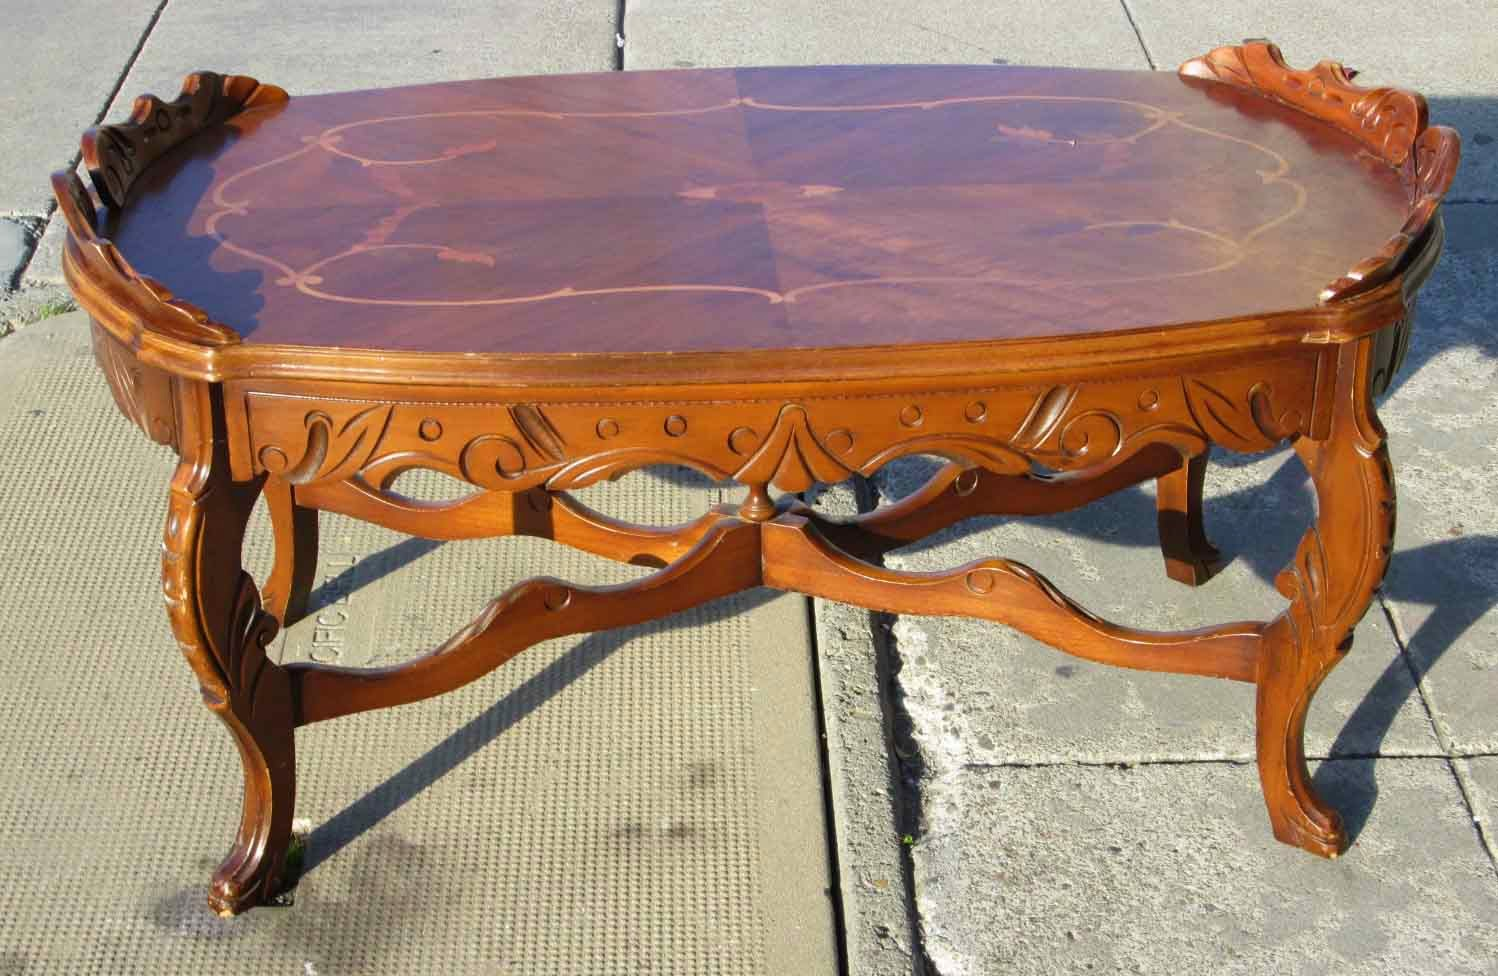 uhuru furniture collectibles sold ornate coffee table 35 as is. Black Bedroom Furniture Sets. Home Design Ideas